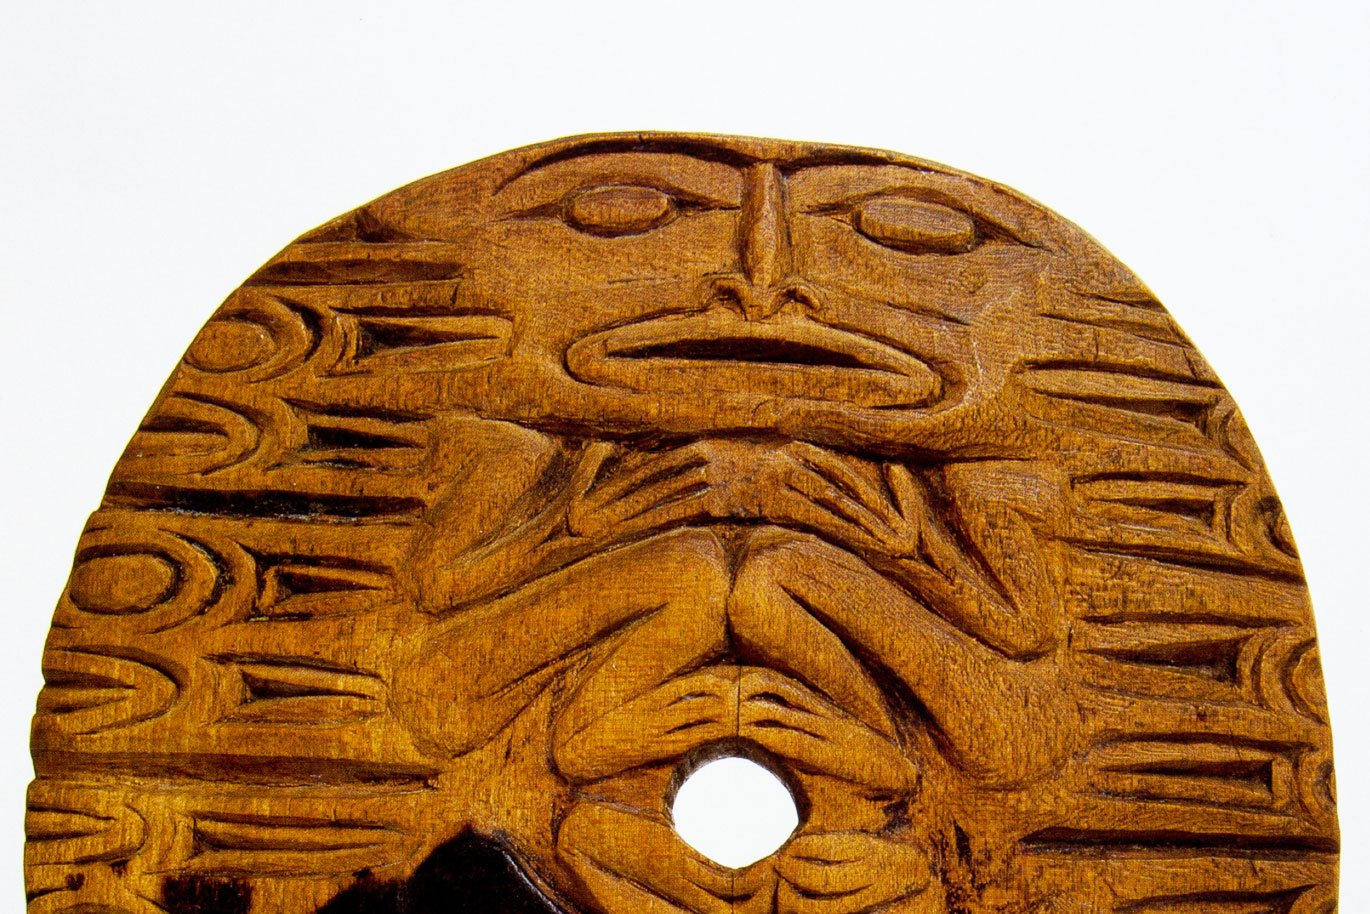 Coast Salish spindle whorl